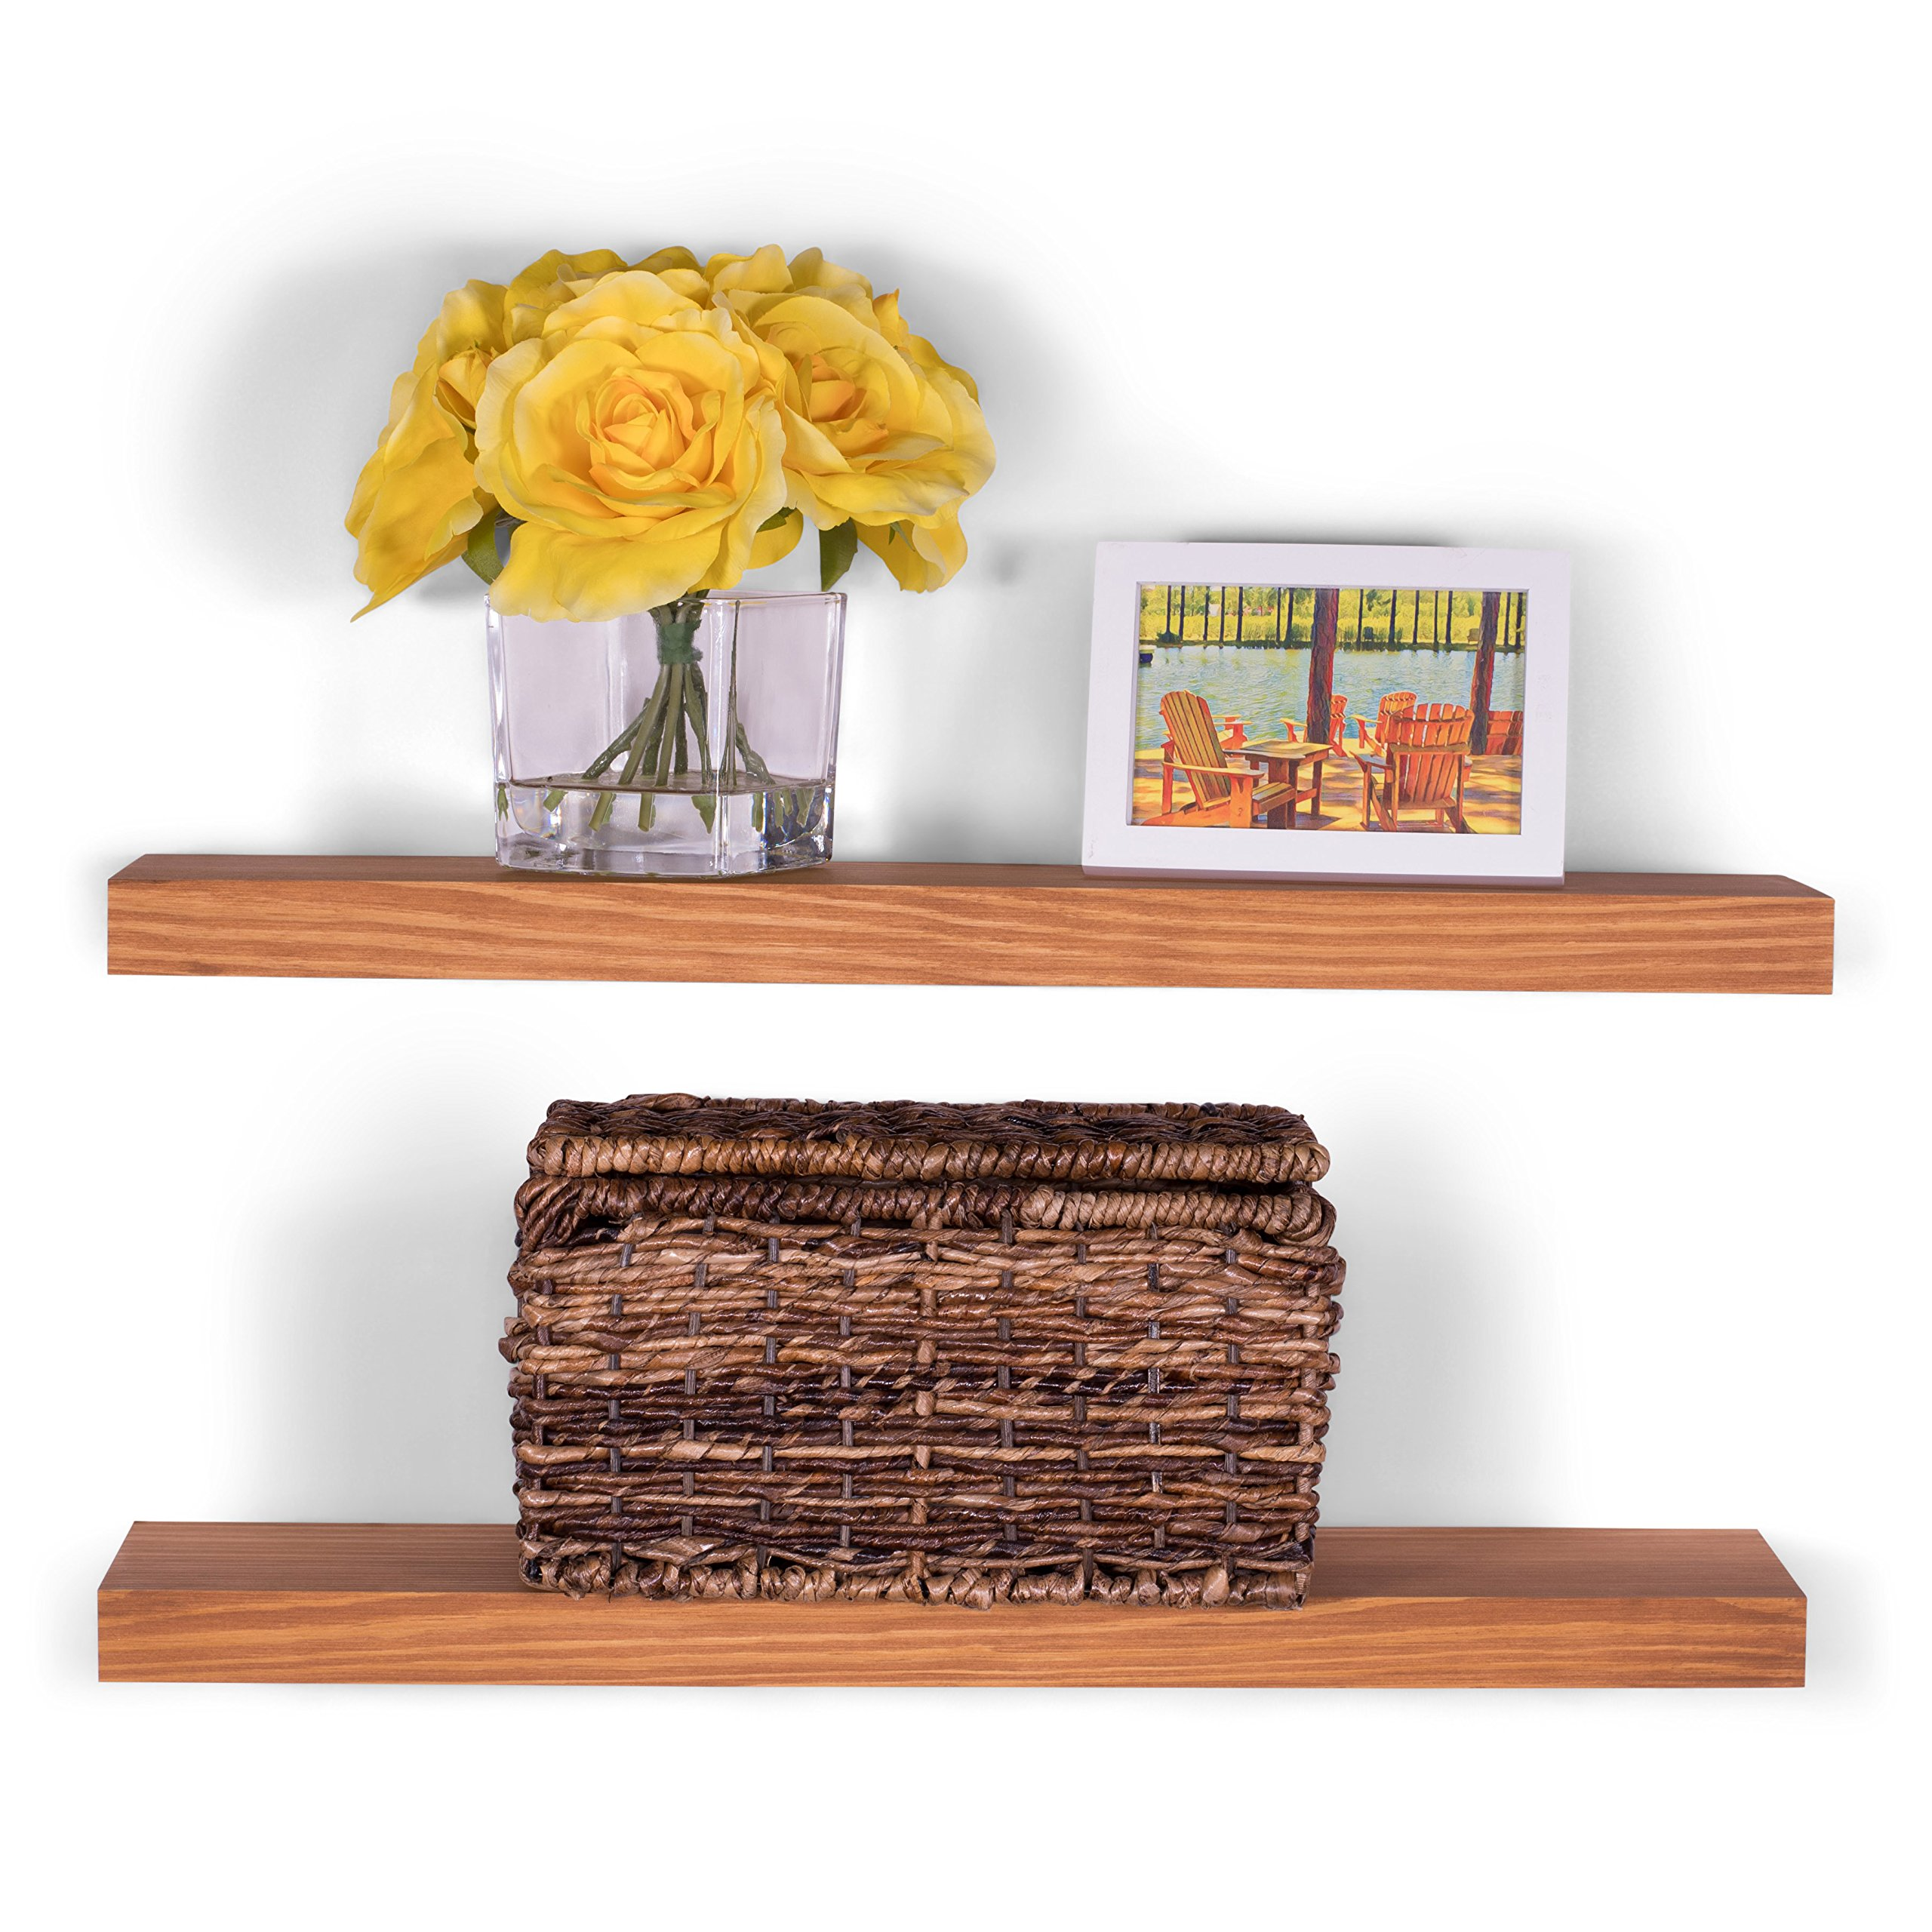 DAKODA LOVE 5.25'' Deep Clean Edge Floating Shelves, USA Handmade, Clear Coat Finish, 100% Countersunk Hidden Floating Shelf Brackets, Beautiful Grain Pine Wood Wall Decor (Set of 2) (24'', Autumn)